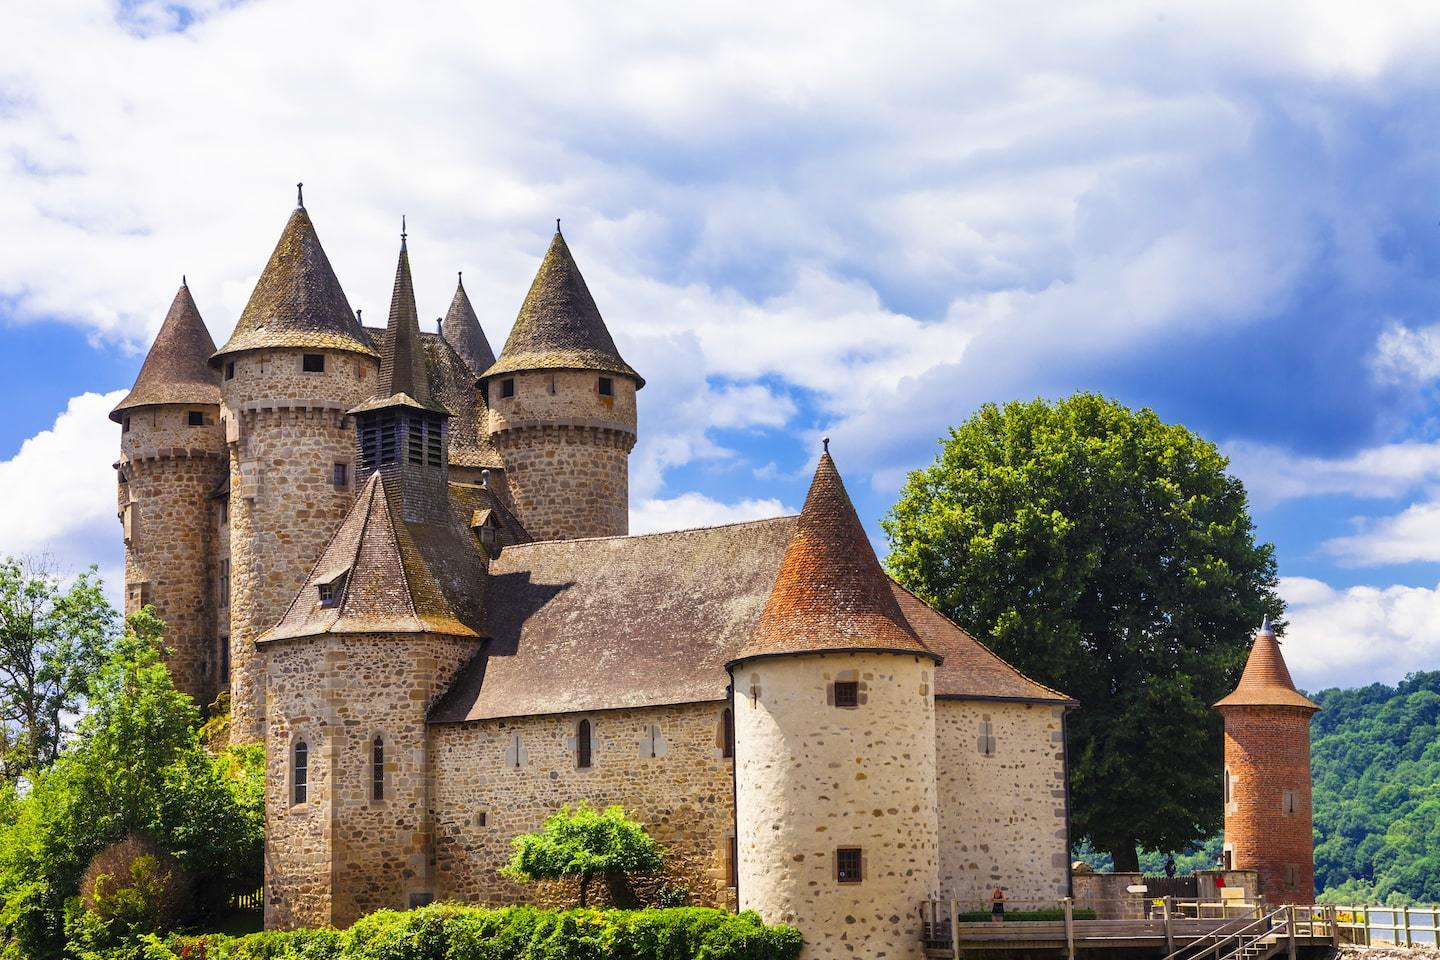 french castle with pointed towers